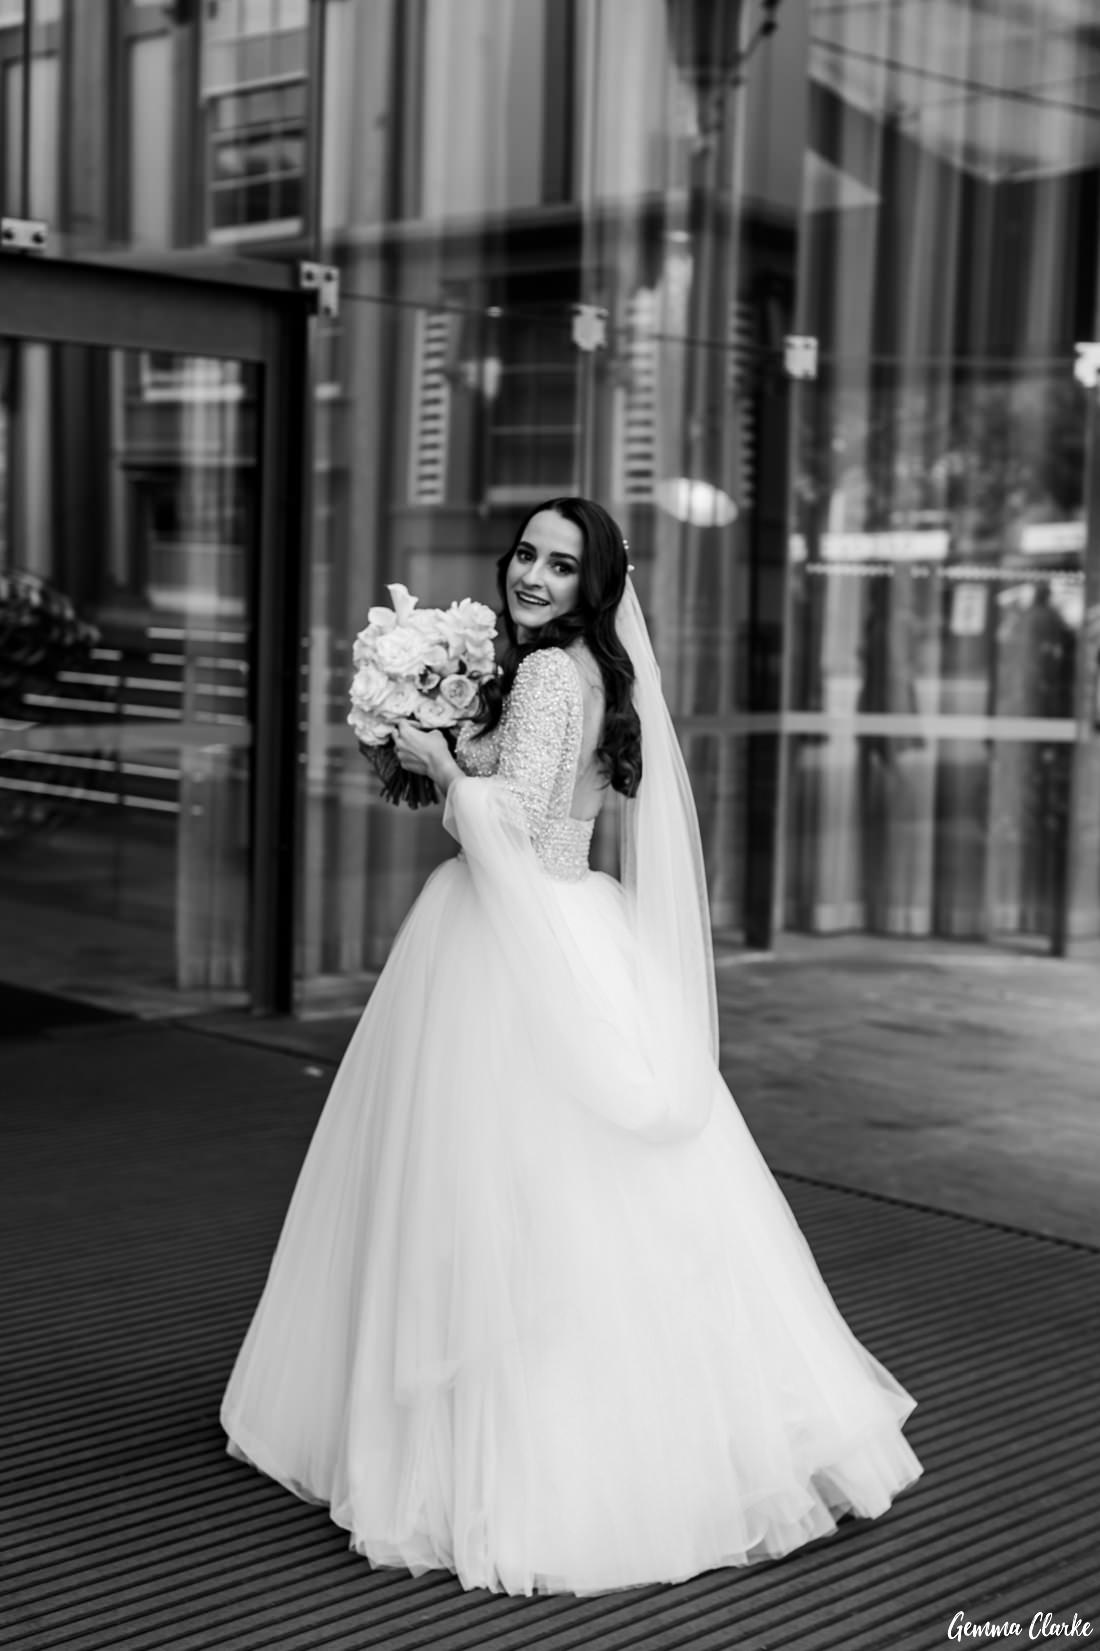 Classically beautiful Olga heads into her Ovolo Hotel Wedding very excited!